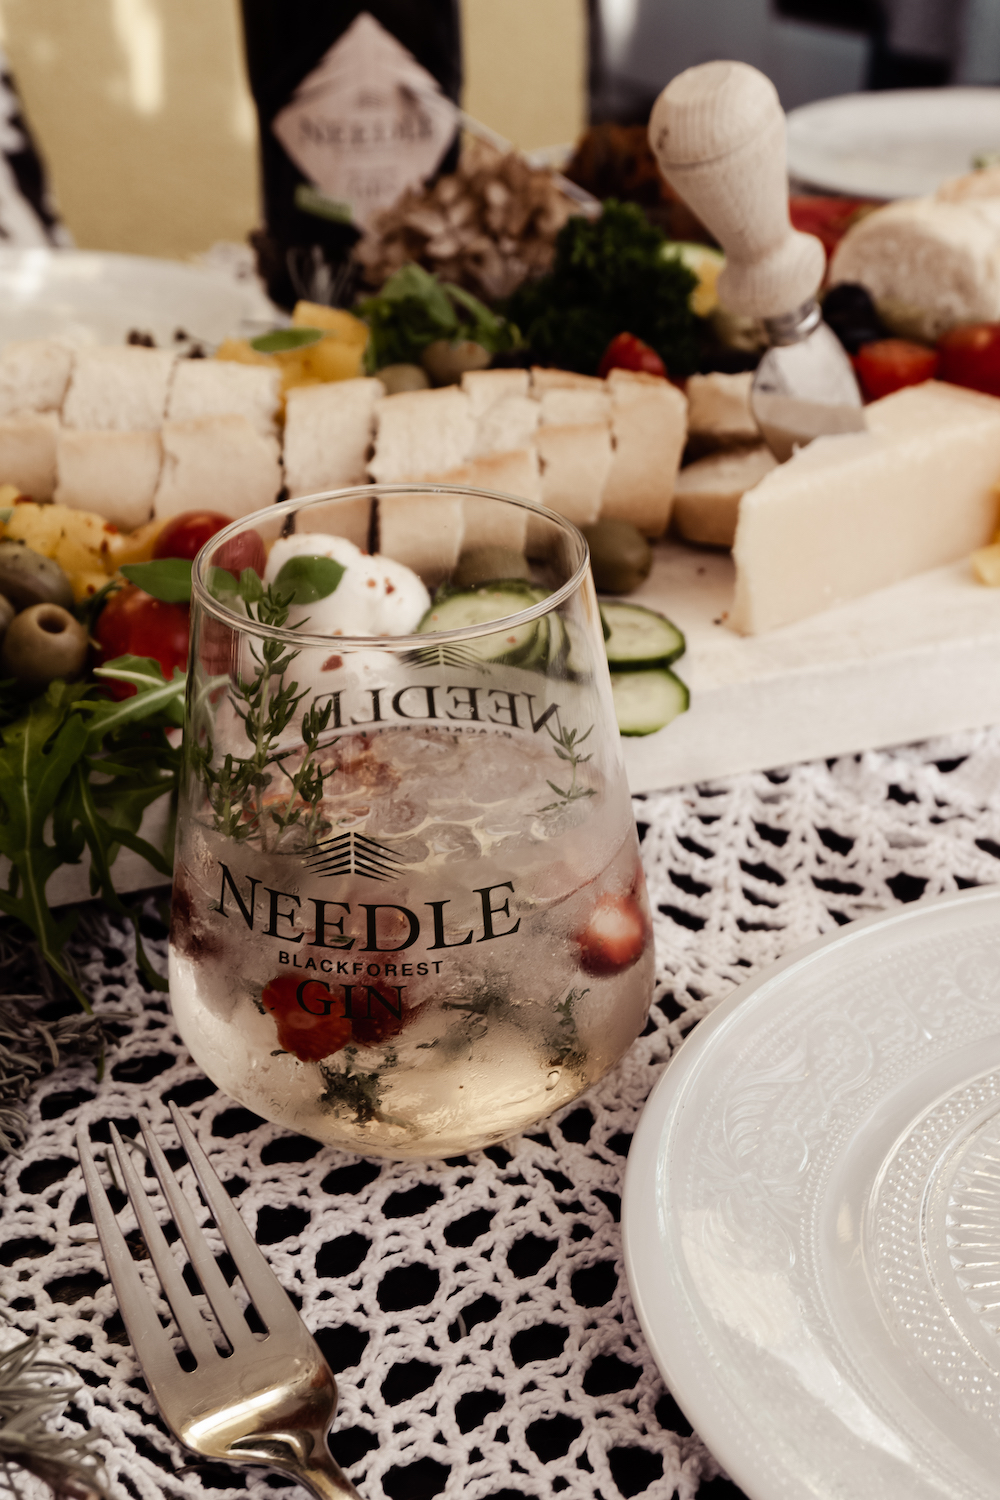 Grazing Table mit Needle Gin